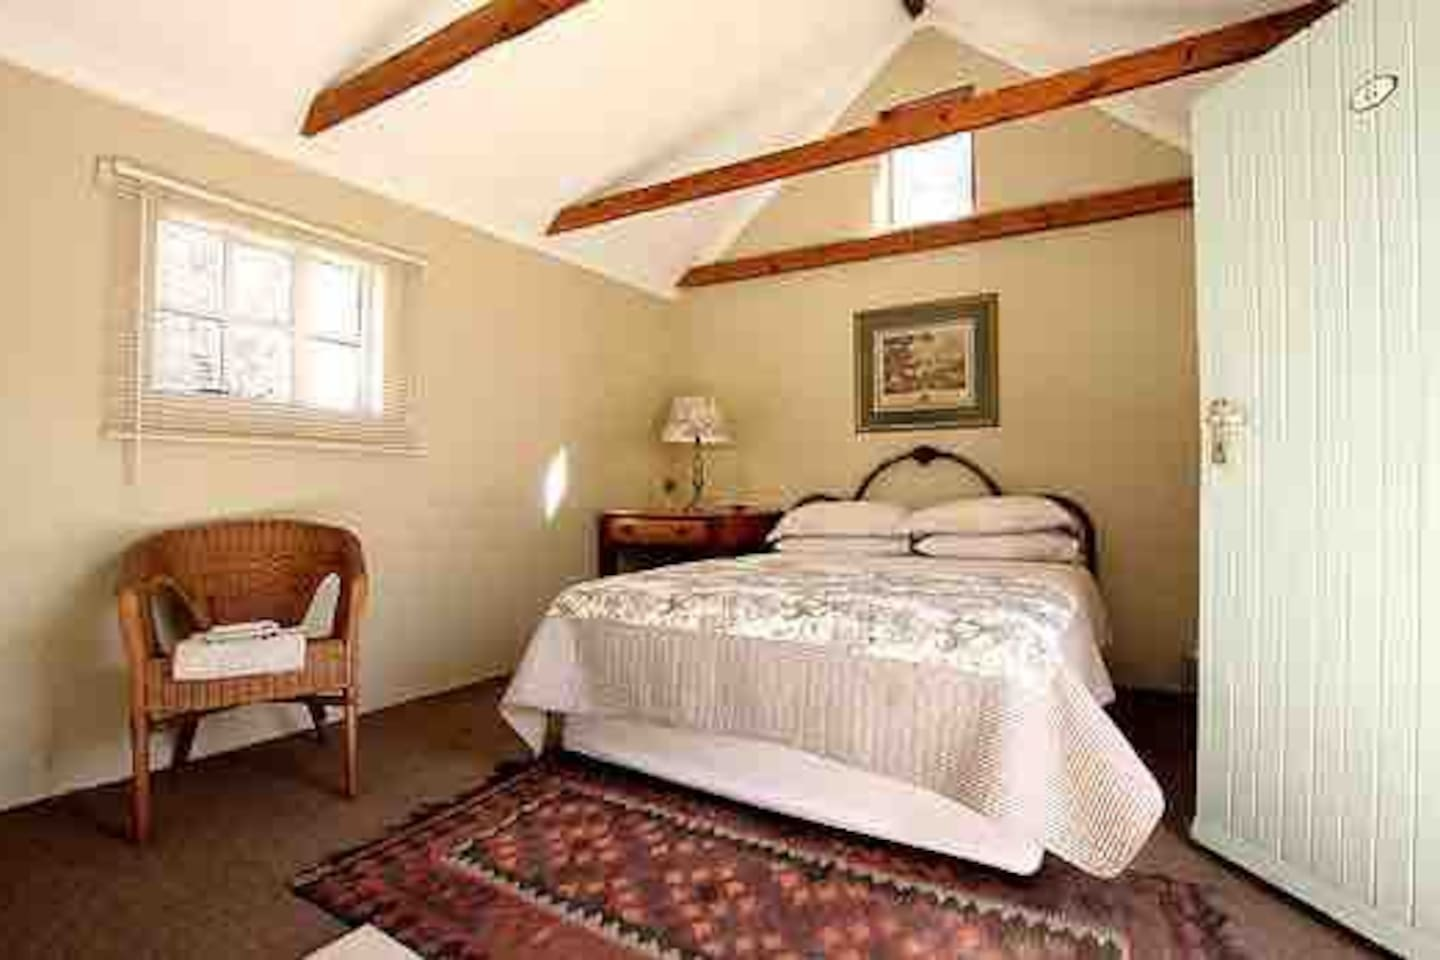 """""""MERCY"""" Sunlight streams through the tiny barn window as a reminder of His new mercies every morning.  The double bachelor room with open plan shower/toilet/basin is suitable for 2 people sharing. A sharing courtyard kitchen serves the 4 rooms."""